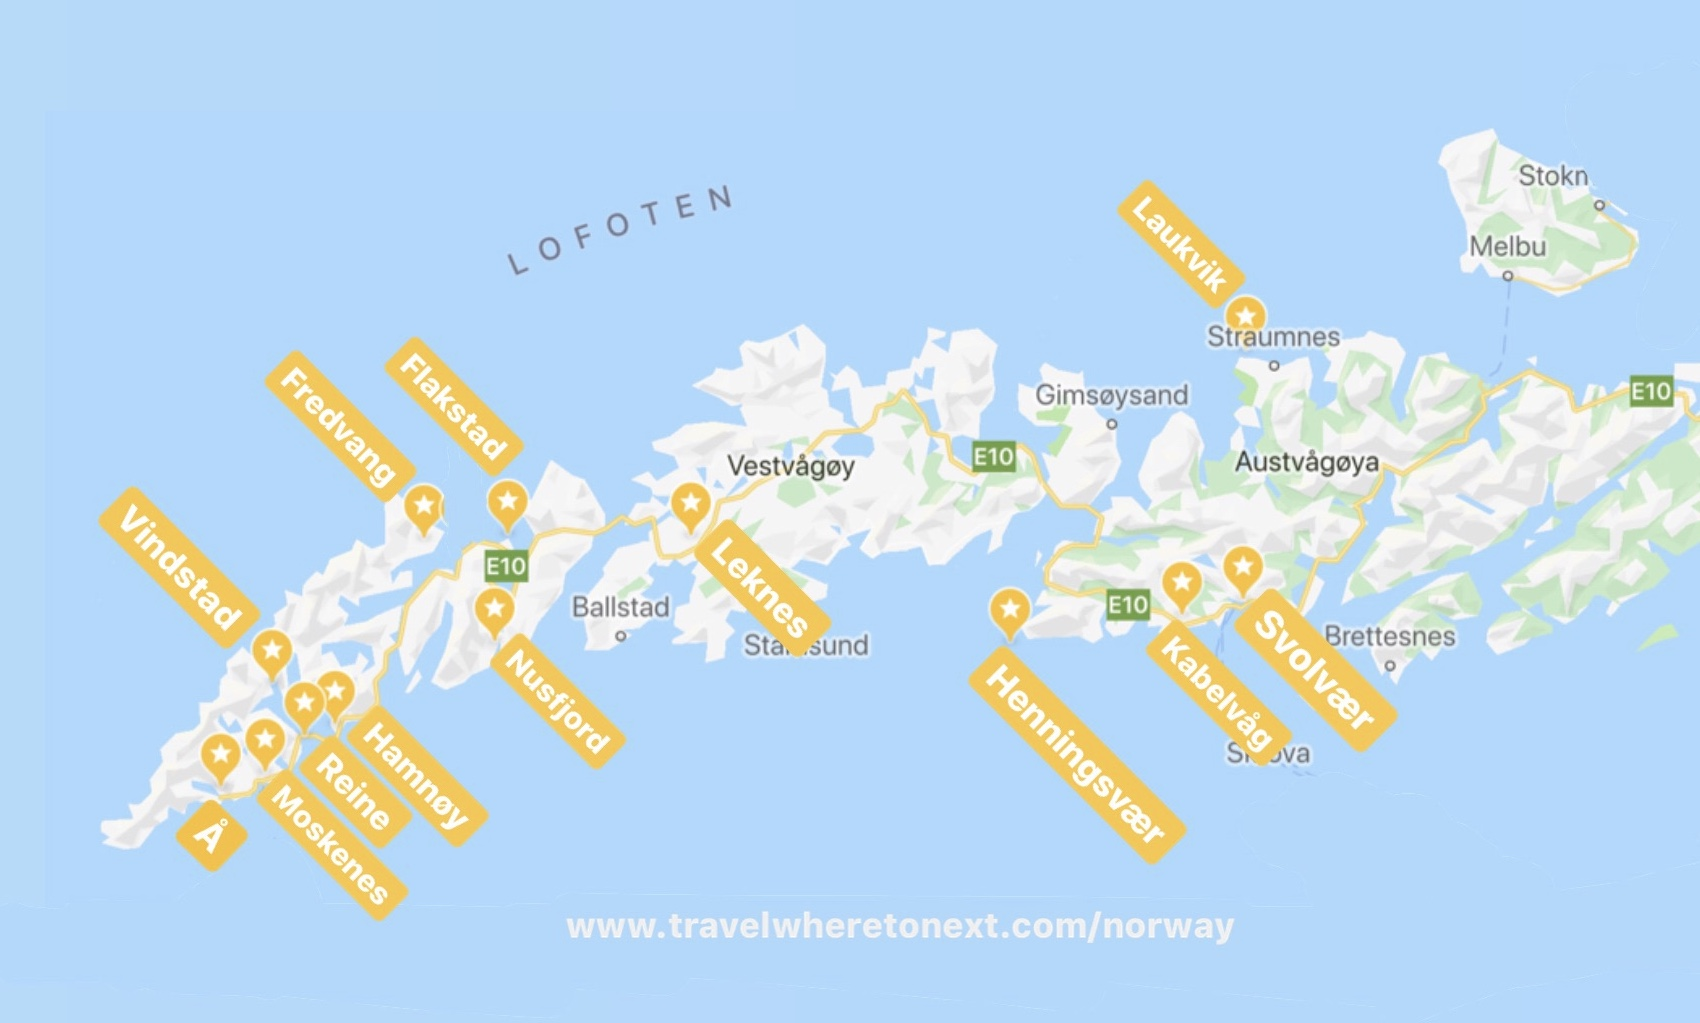 The best towns to visit while you are in Lofoten. Listed below in order from Southwest to Northeast.